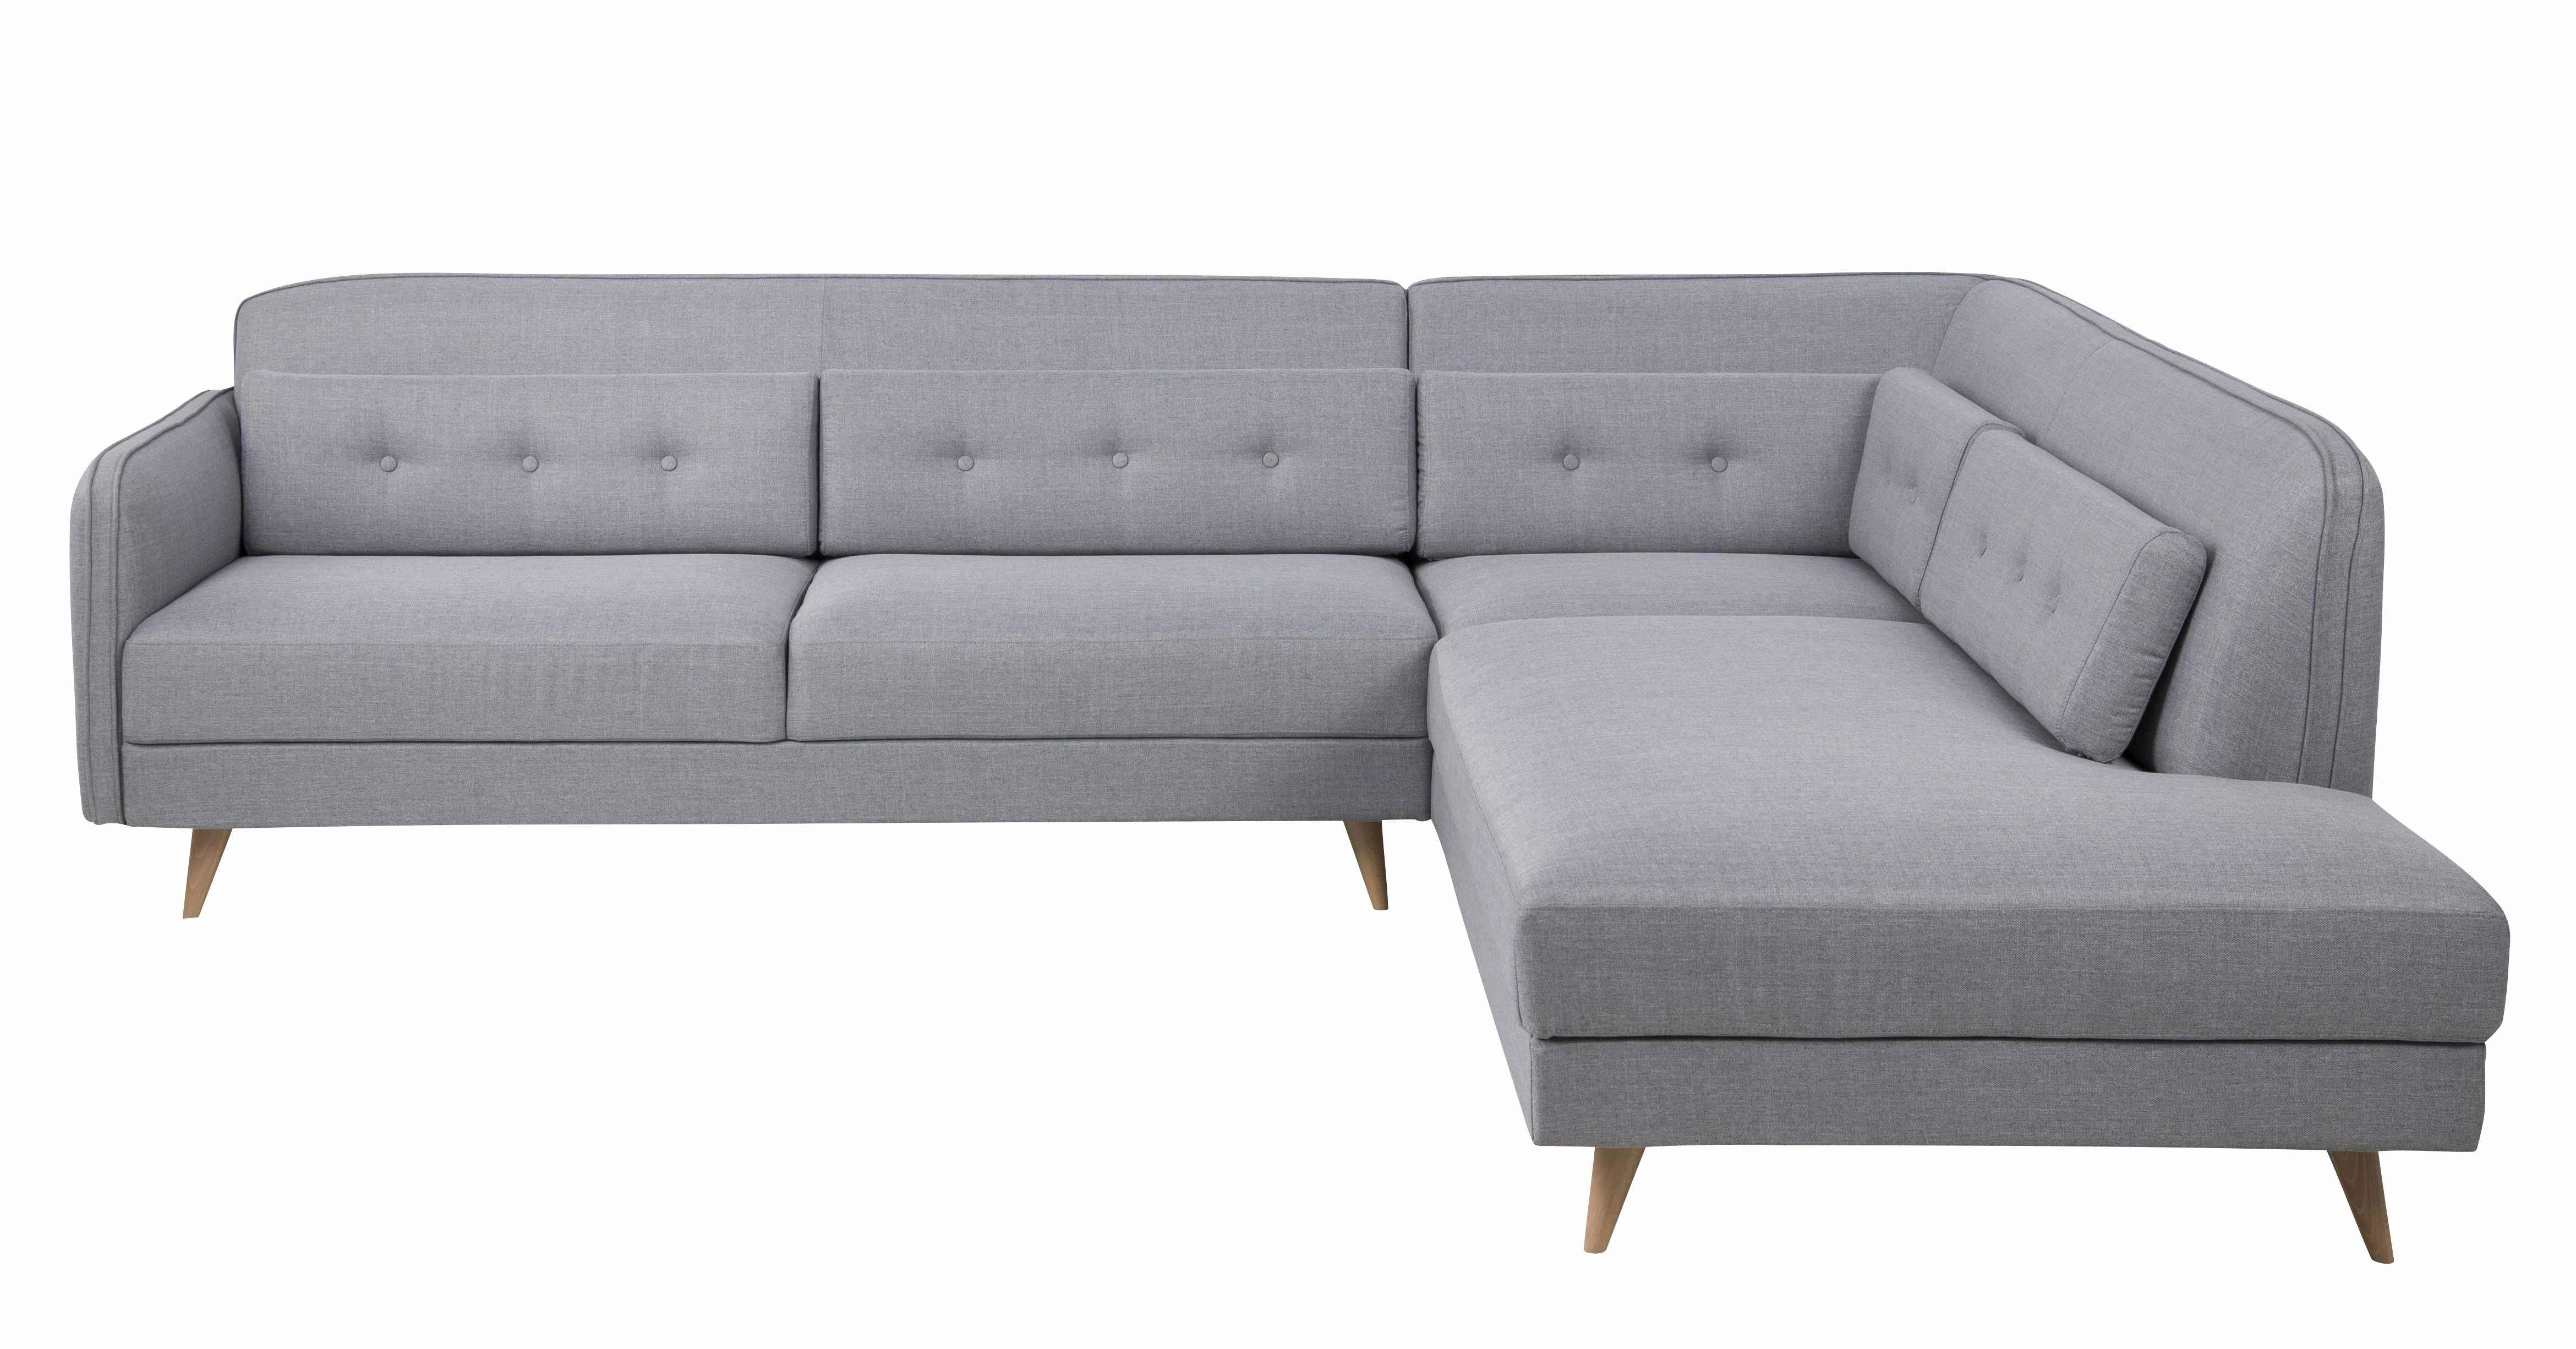 Wohnlandschaft L Form Günstig Wohnlandschaft L Form Xxl American Furniture Furniture Warehouse Sofa